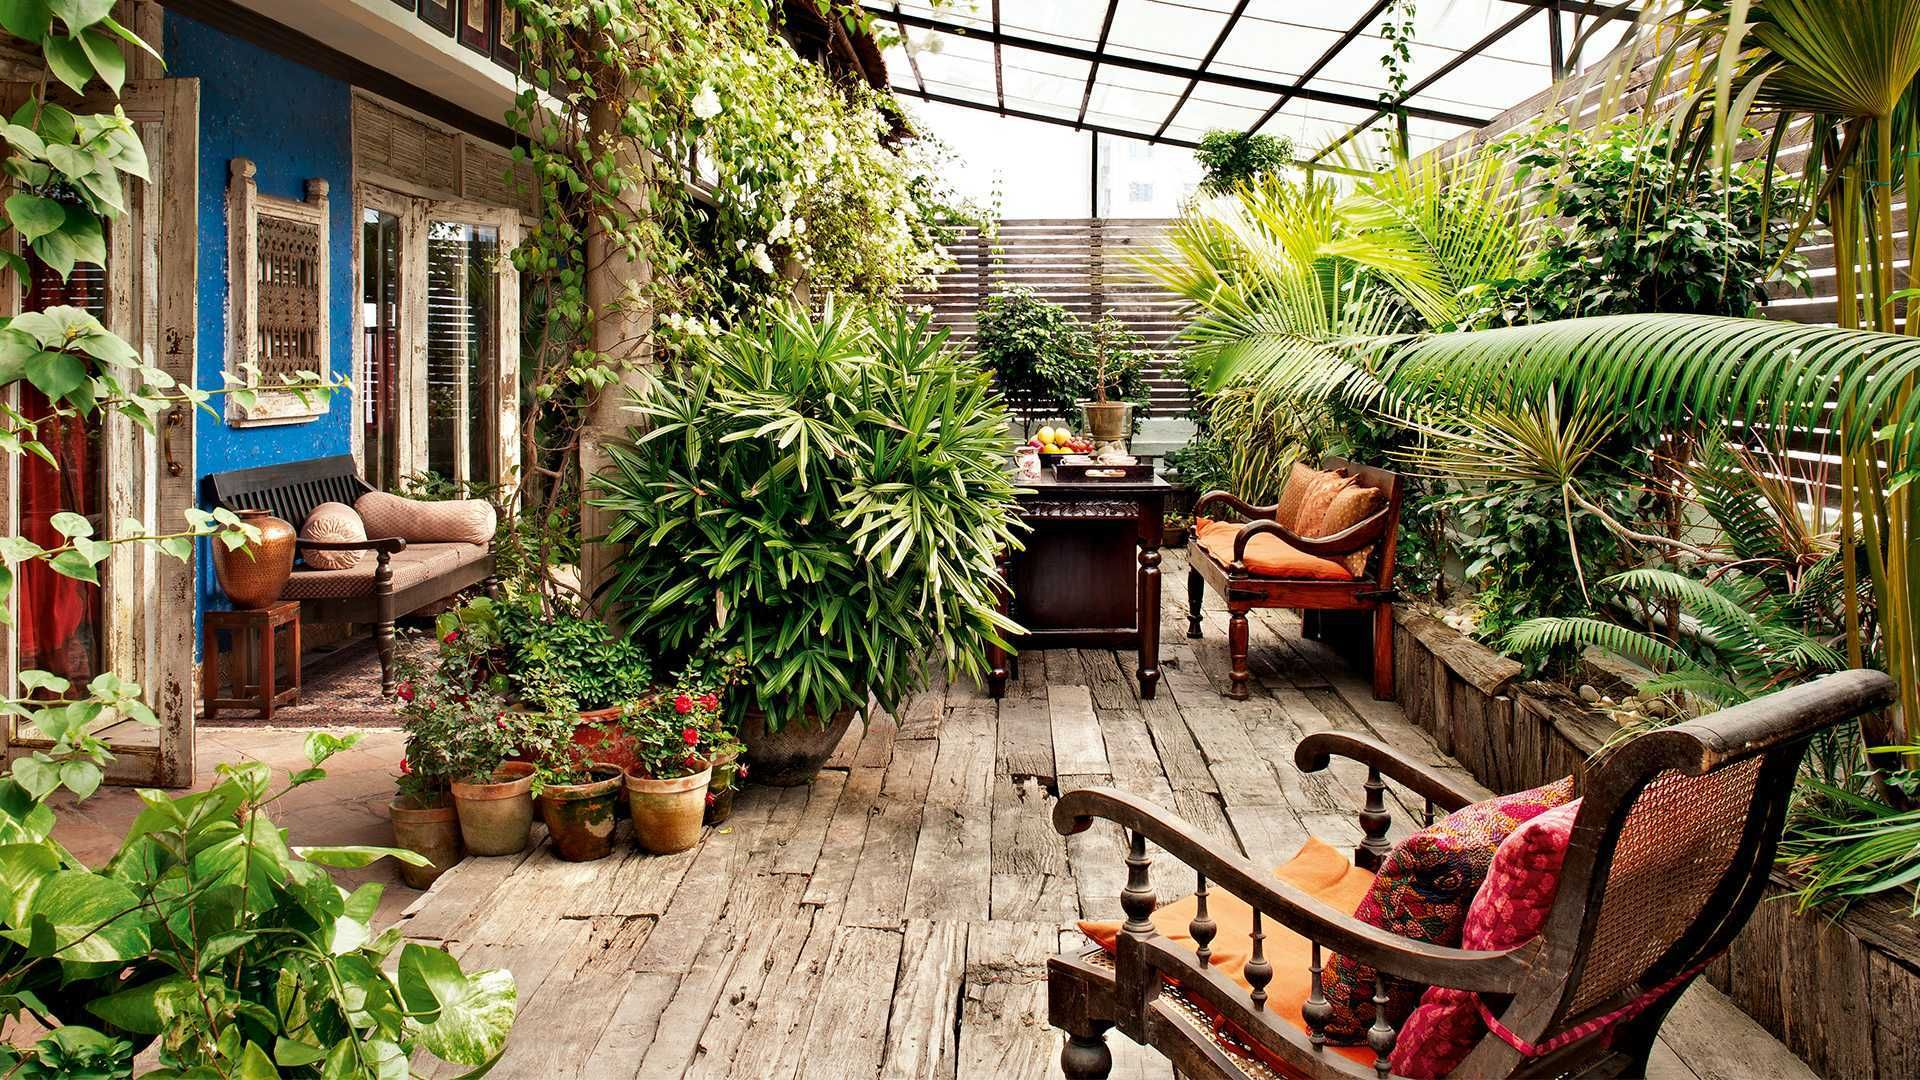 7 Tips To Give Your Terrace Garden A Stunning Look - 2020 ...